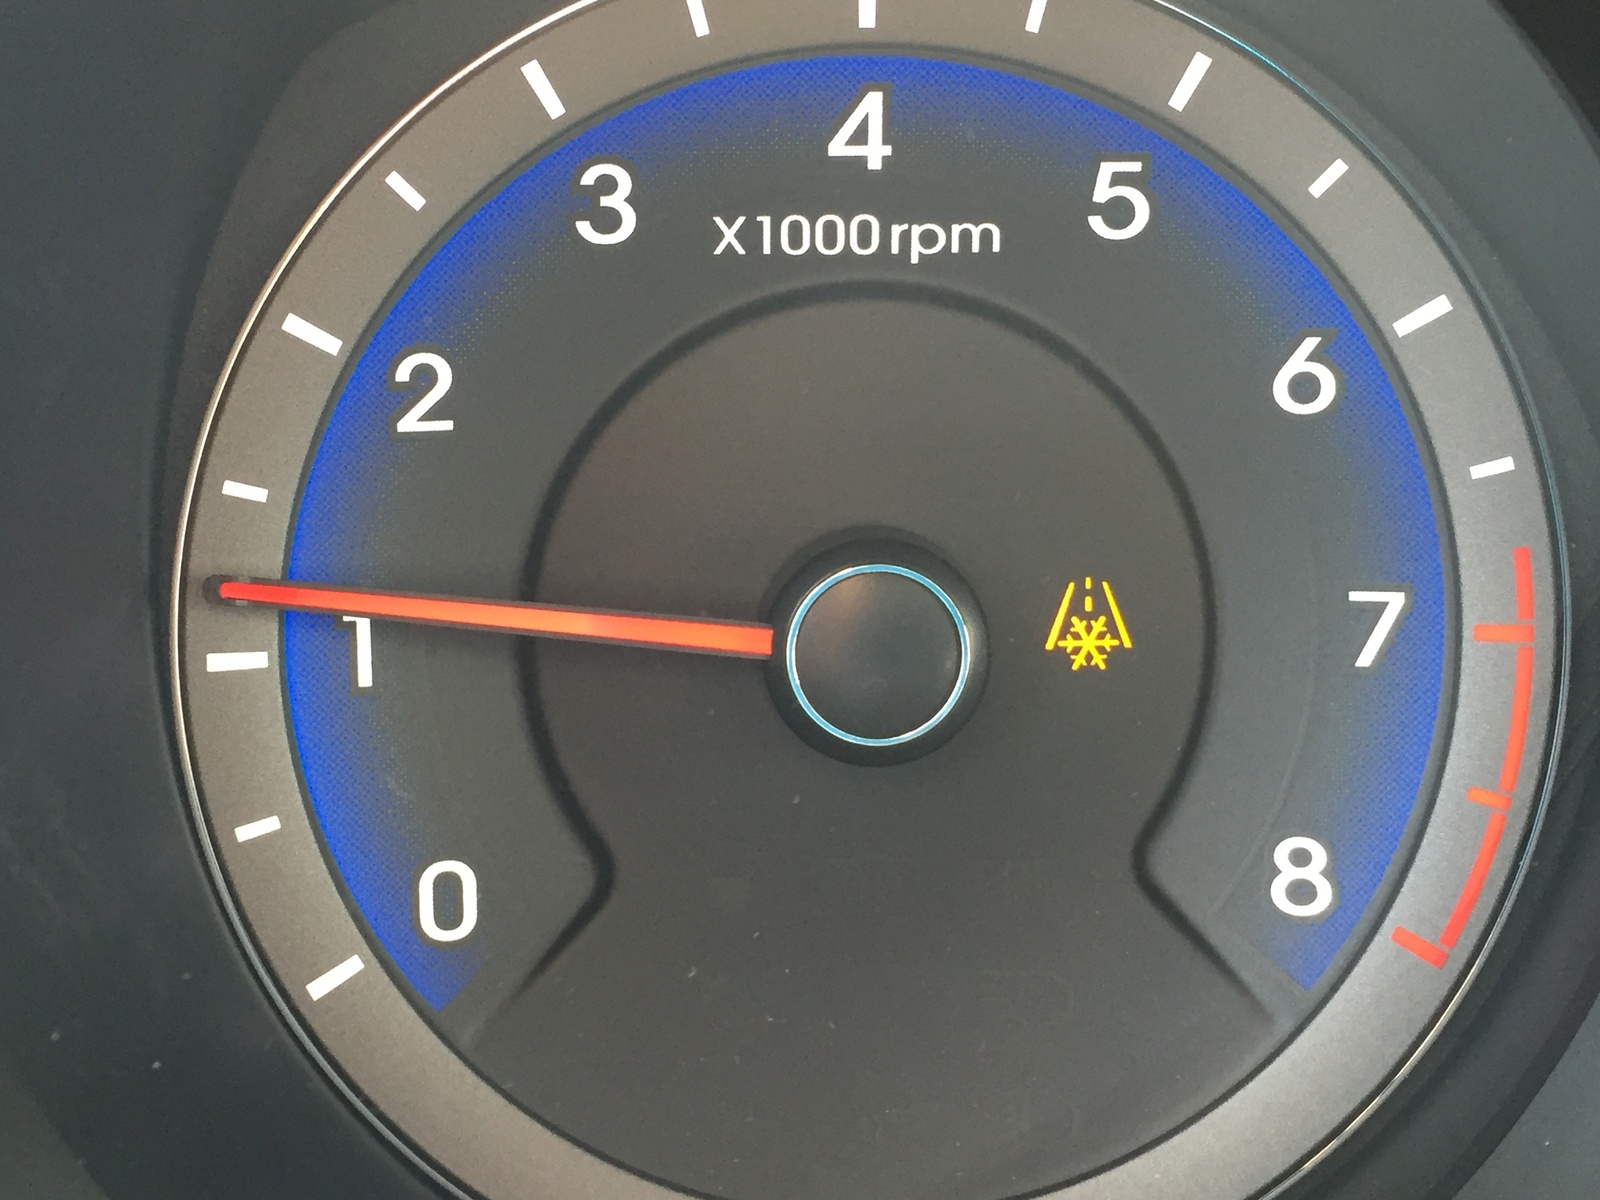 Warning Lights On Hyundai Elantra Iron Blog